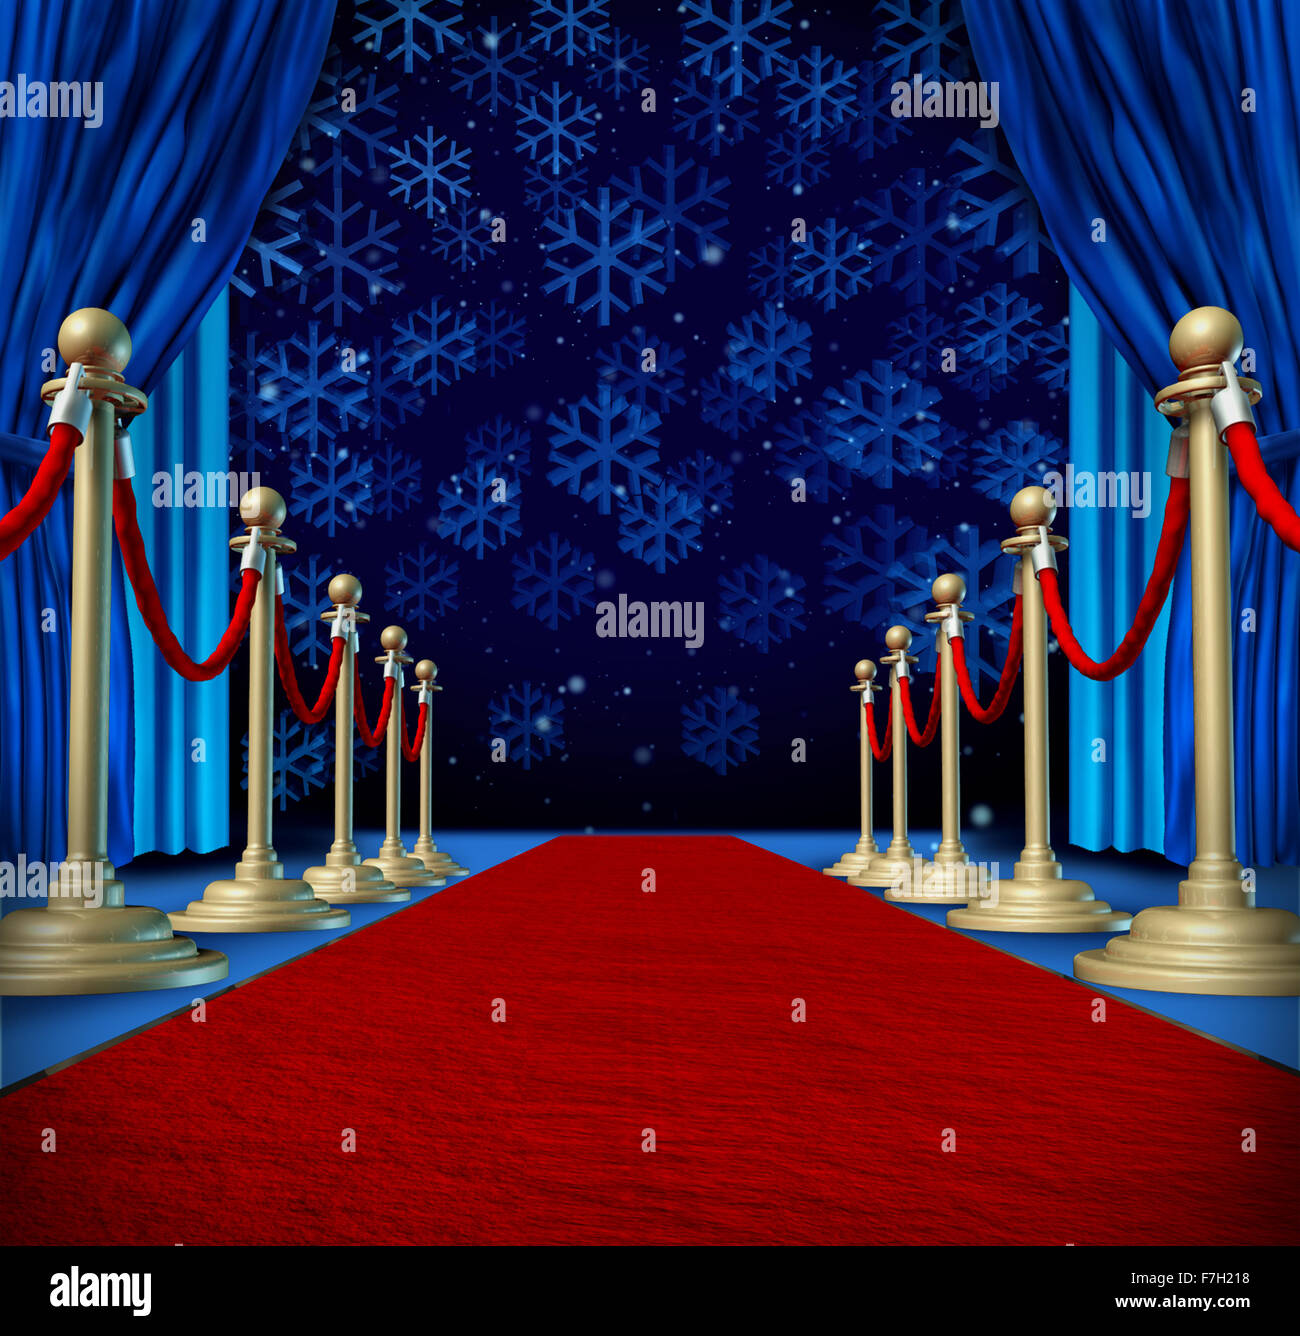 Winter red carpet background as a catwalk or runway in an auditorium stage with snowflakes falling down as a seasonal Stock Photo